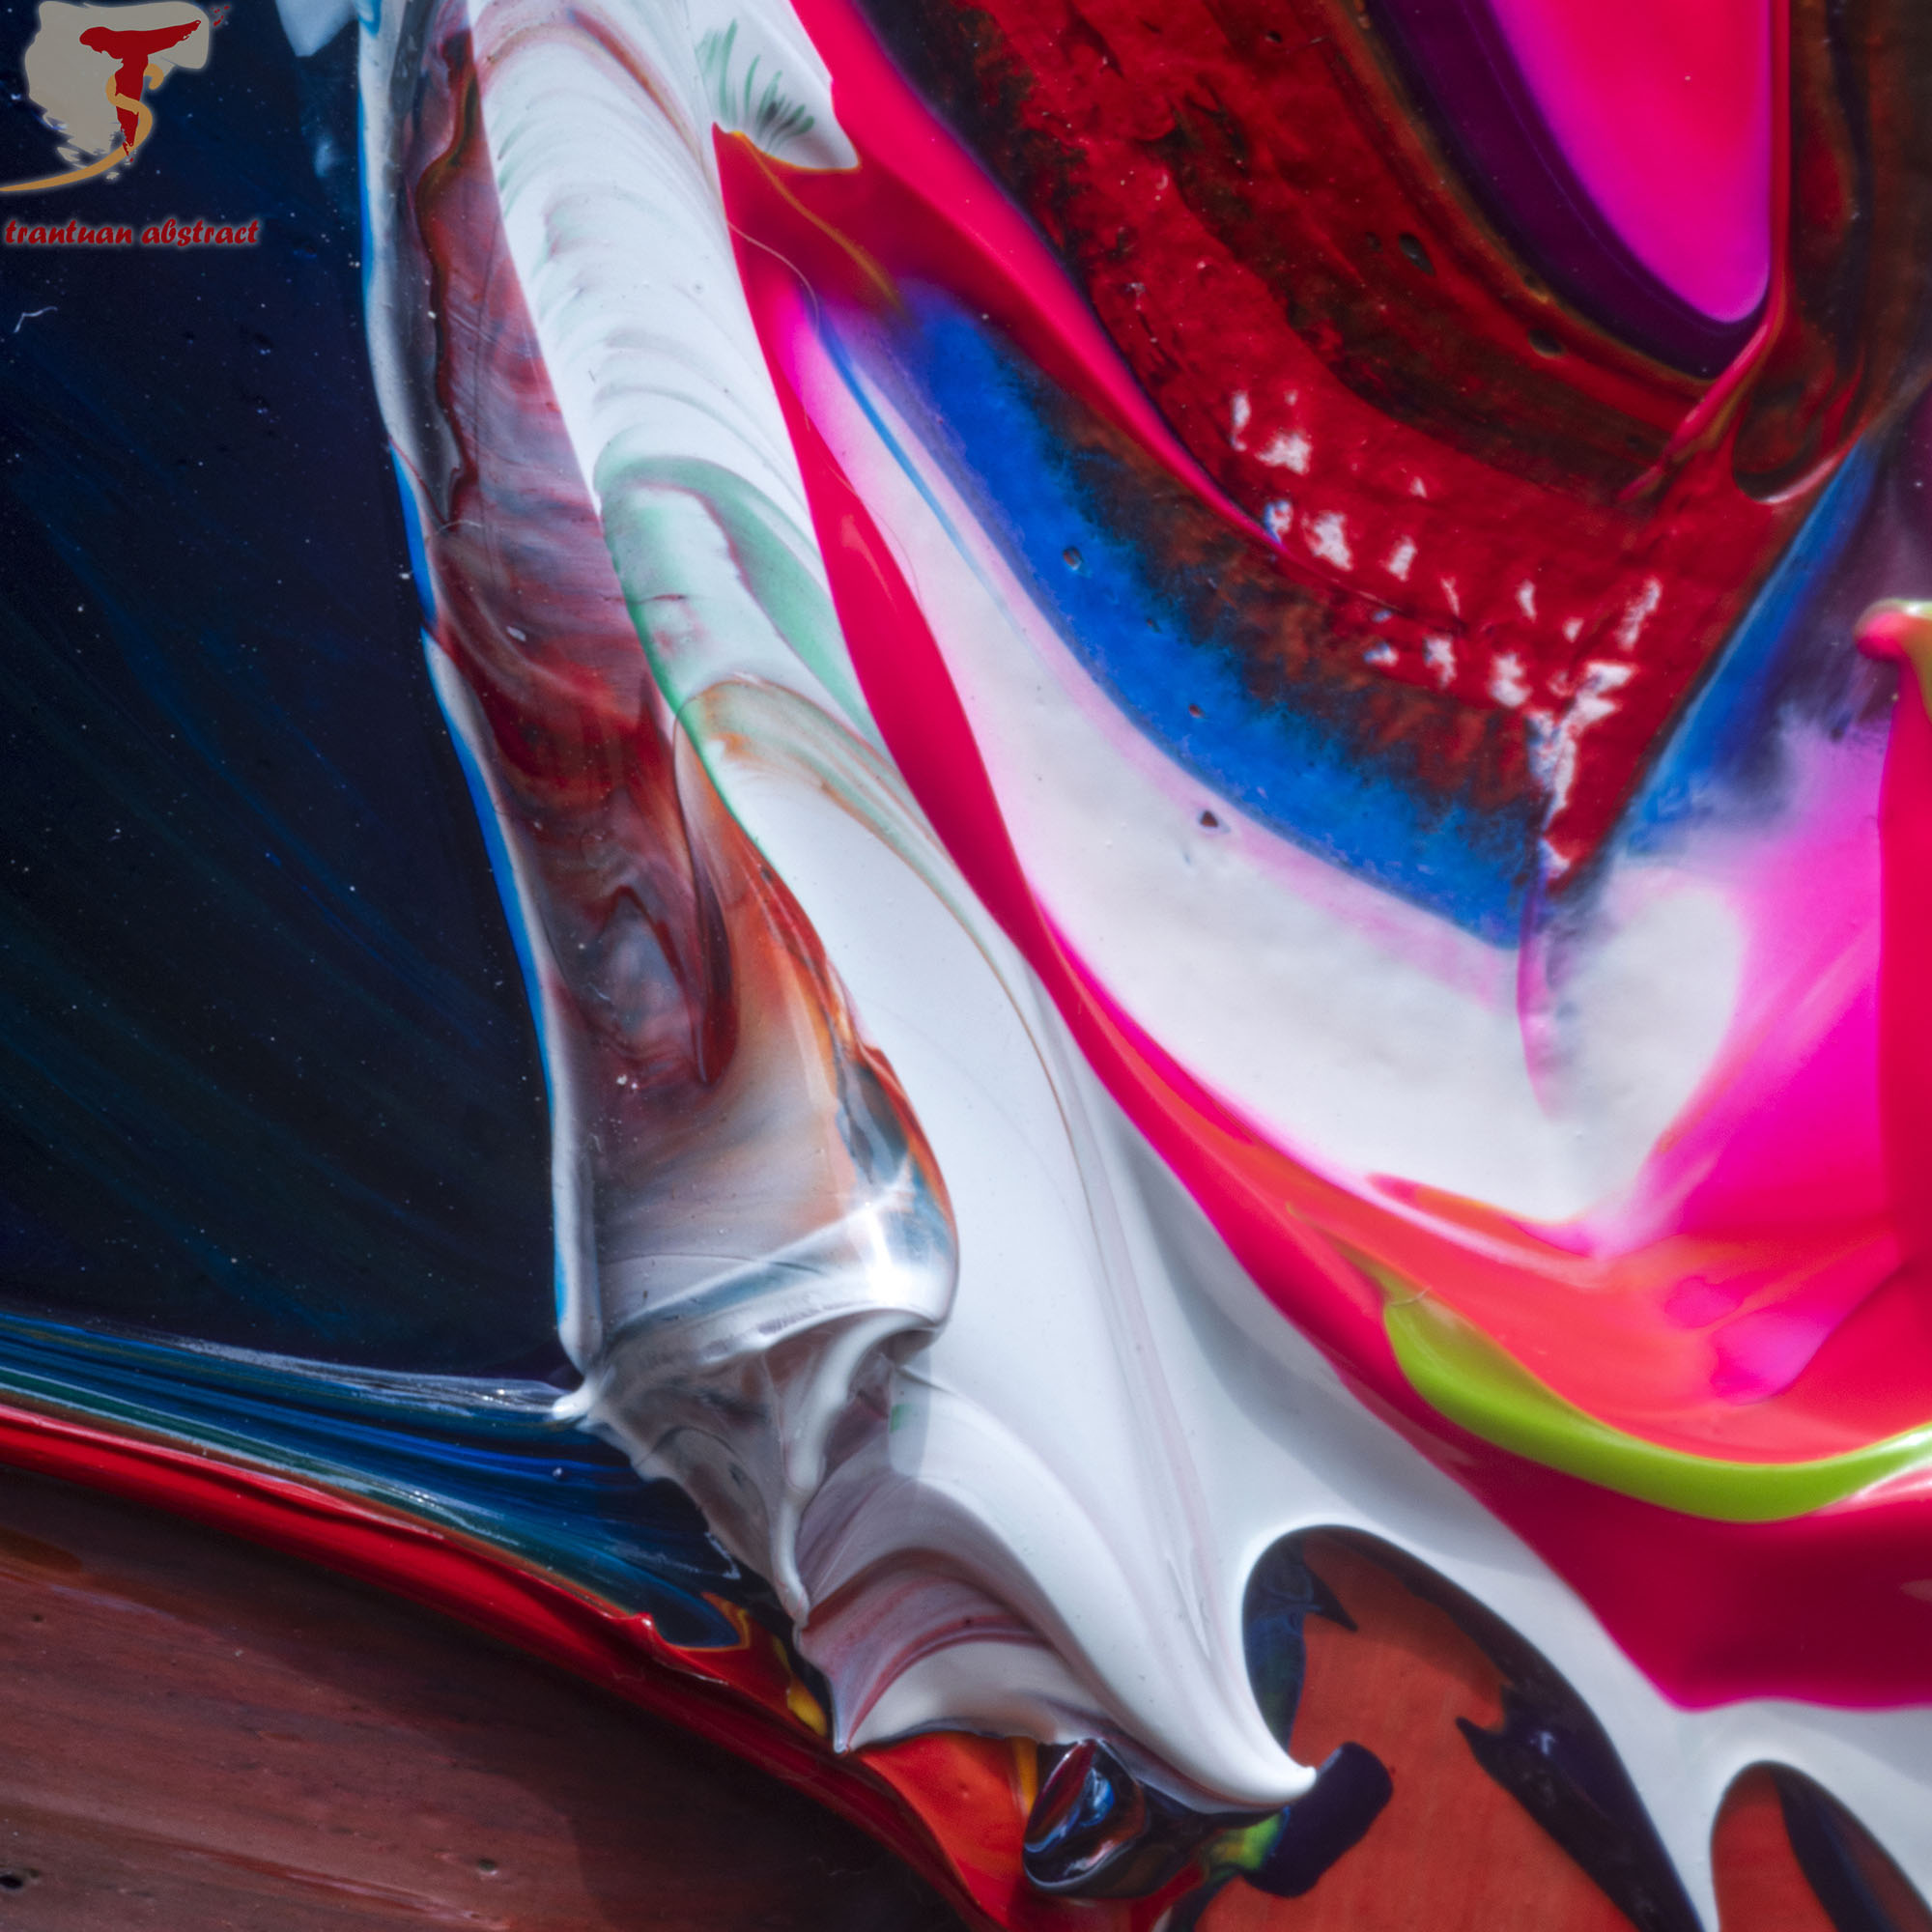 Tran Tuan Abstract Melody of Love 135 x 80 x 5 cm Acrylic on Canvas Painting Detail